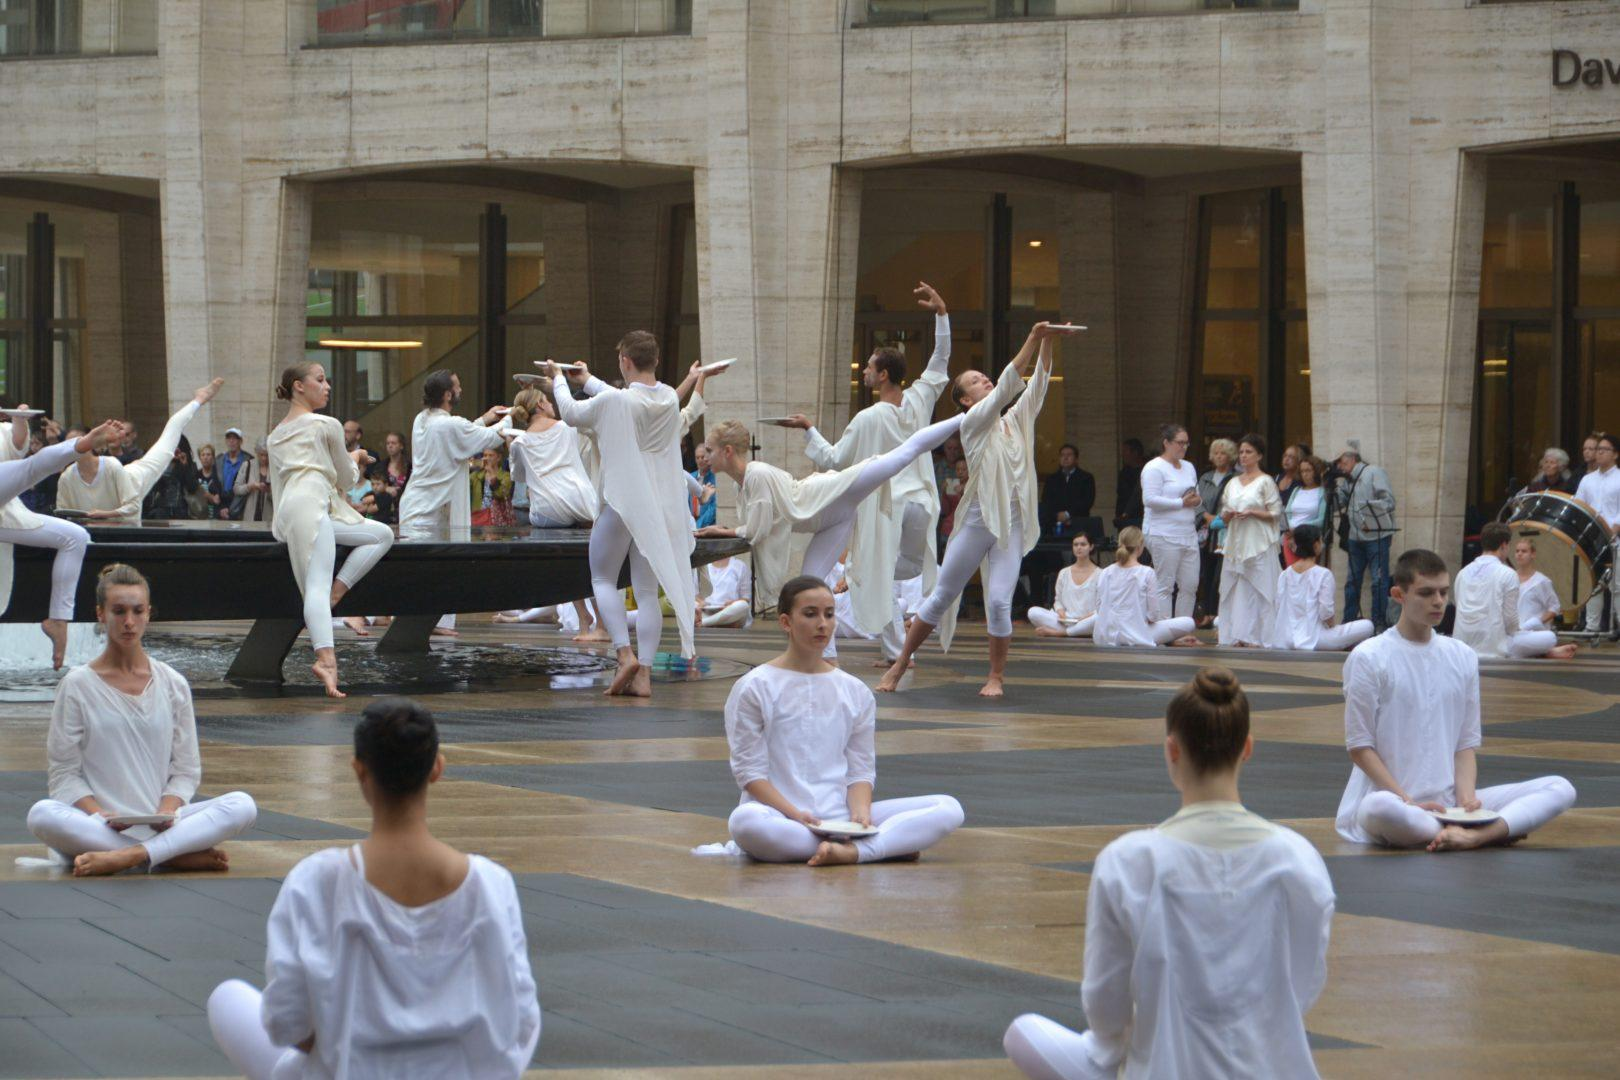 Dancers Bring NYC to a Pause on 9/11